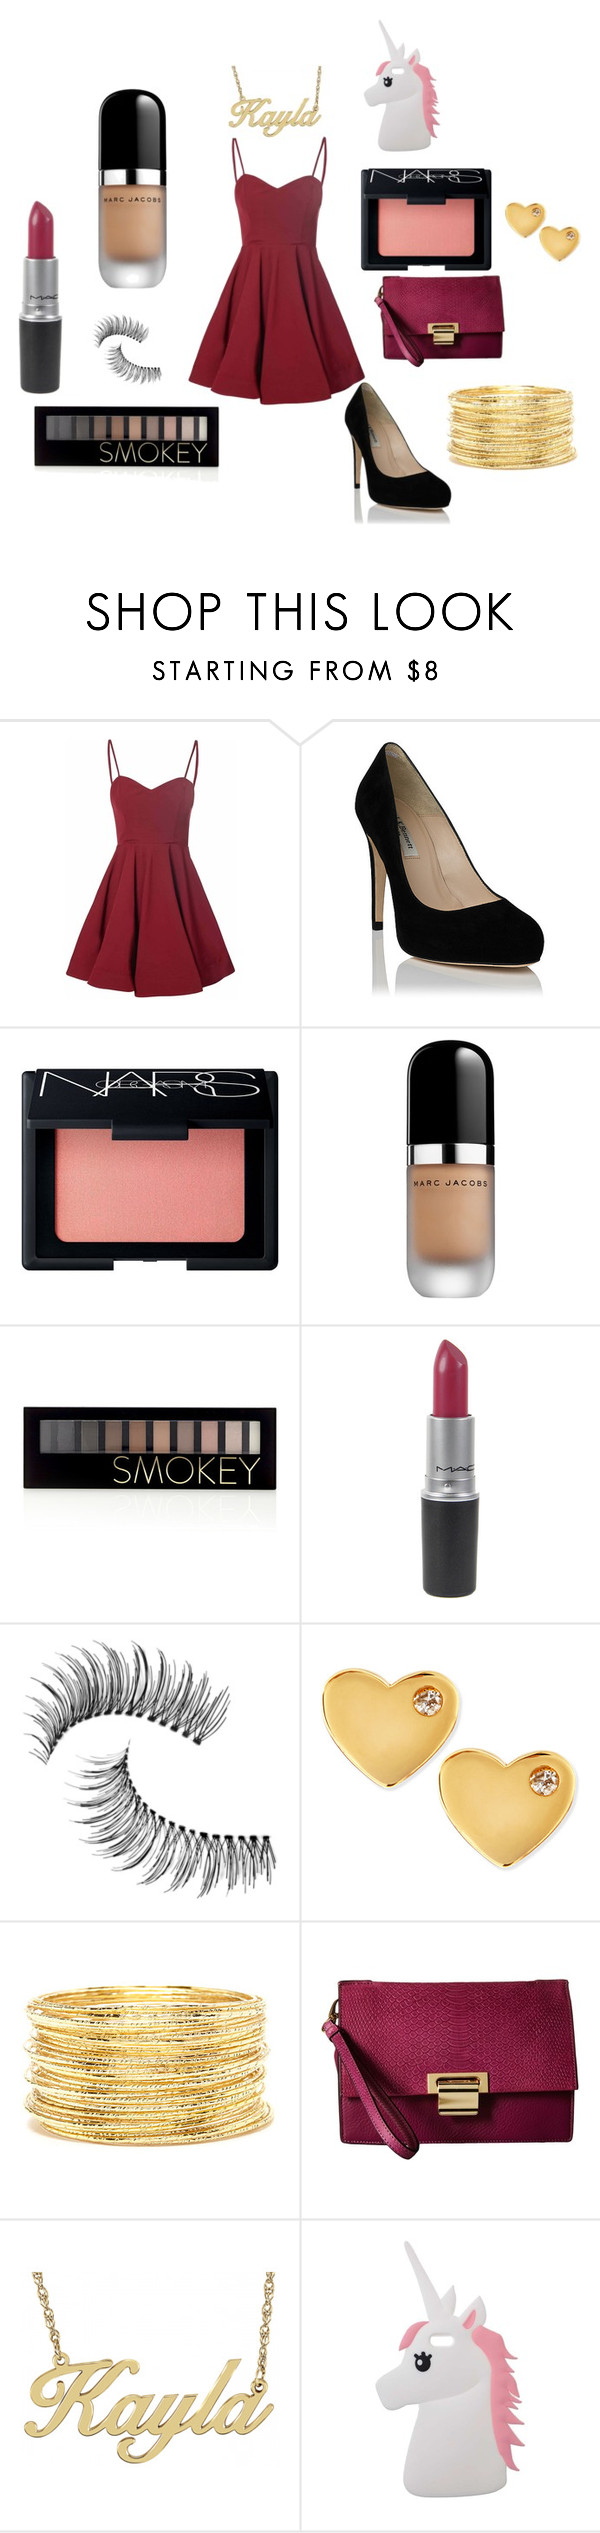 """""""Wedding guest teen"""" by meggieb7 ❤ liked on Polyvore featuring Glamorous, NARS Cosmetics, Marc Jacobs, Forever 21, Trish McEvoy, Sydney Evan, Ivanka Trump, Alison & Ivy and Miss Selfridge"""